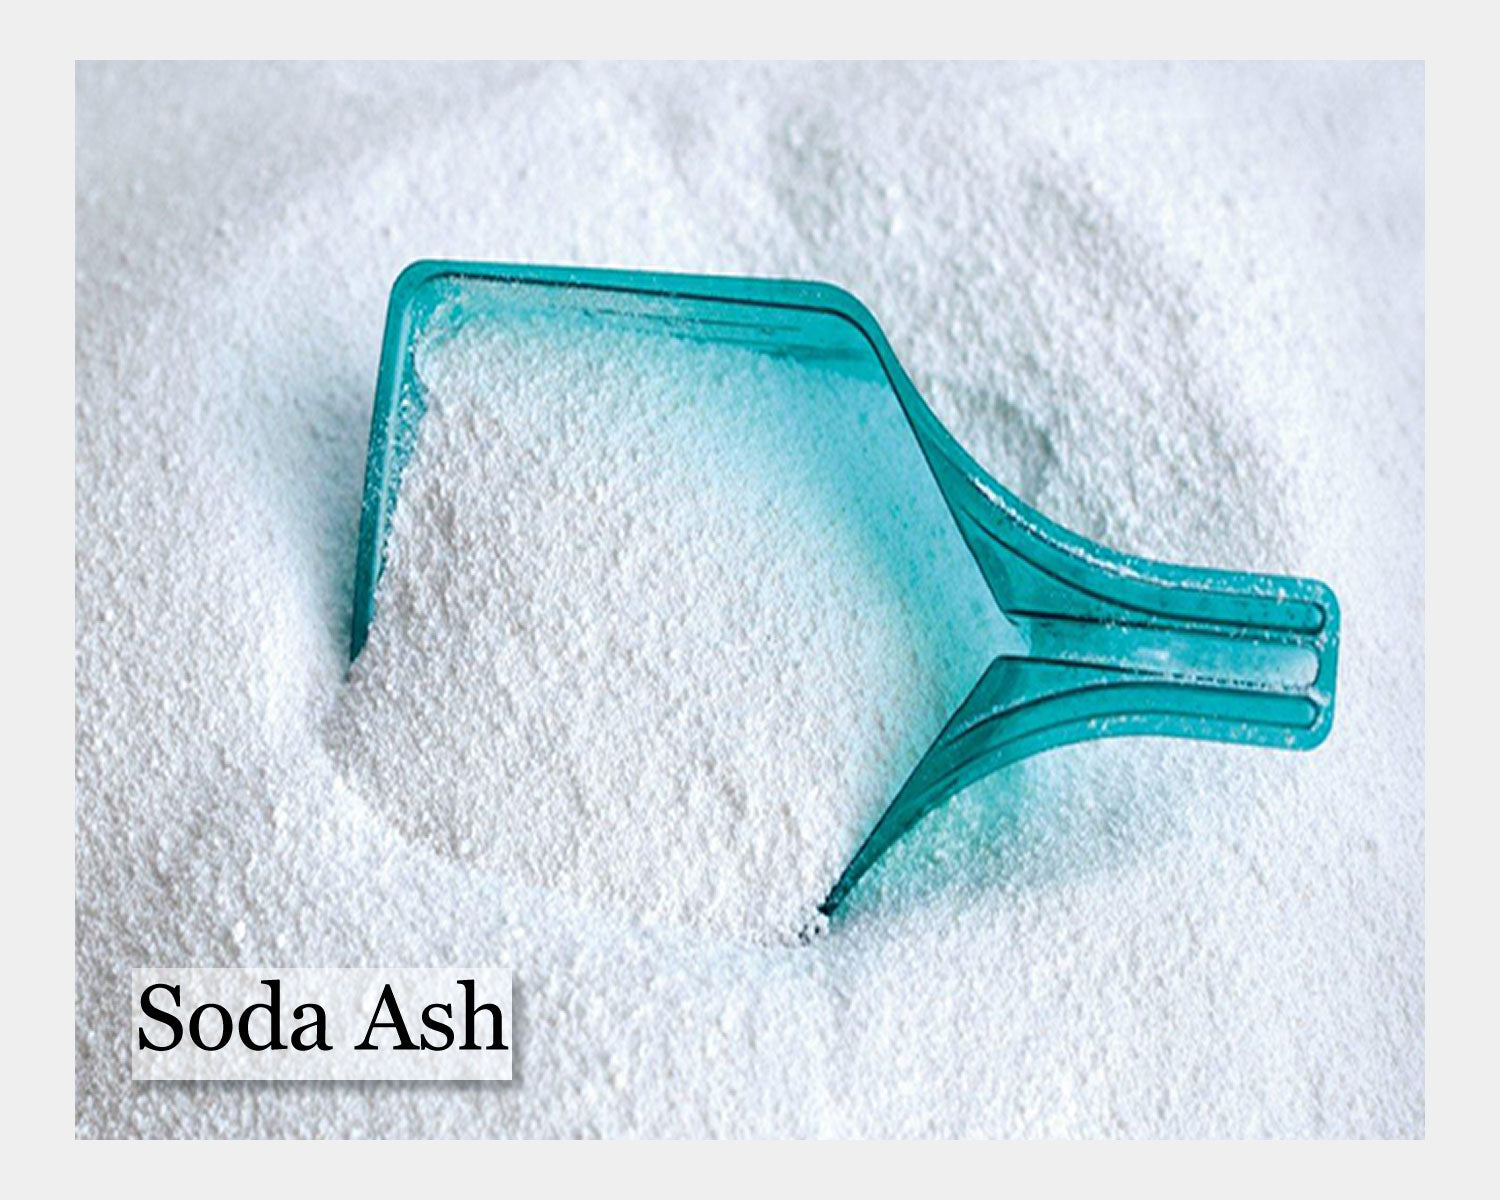 Soda Ash - 16 oz - Wholesale